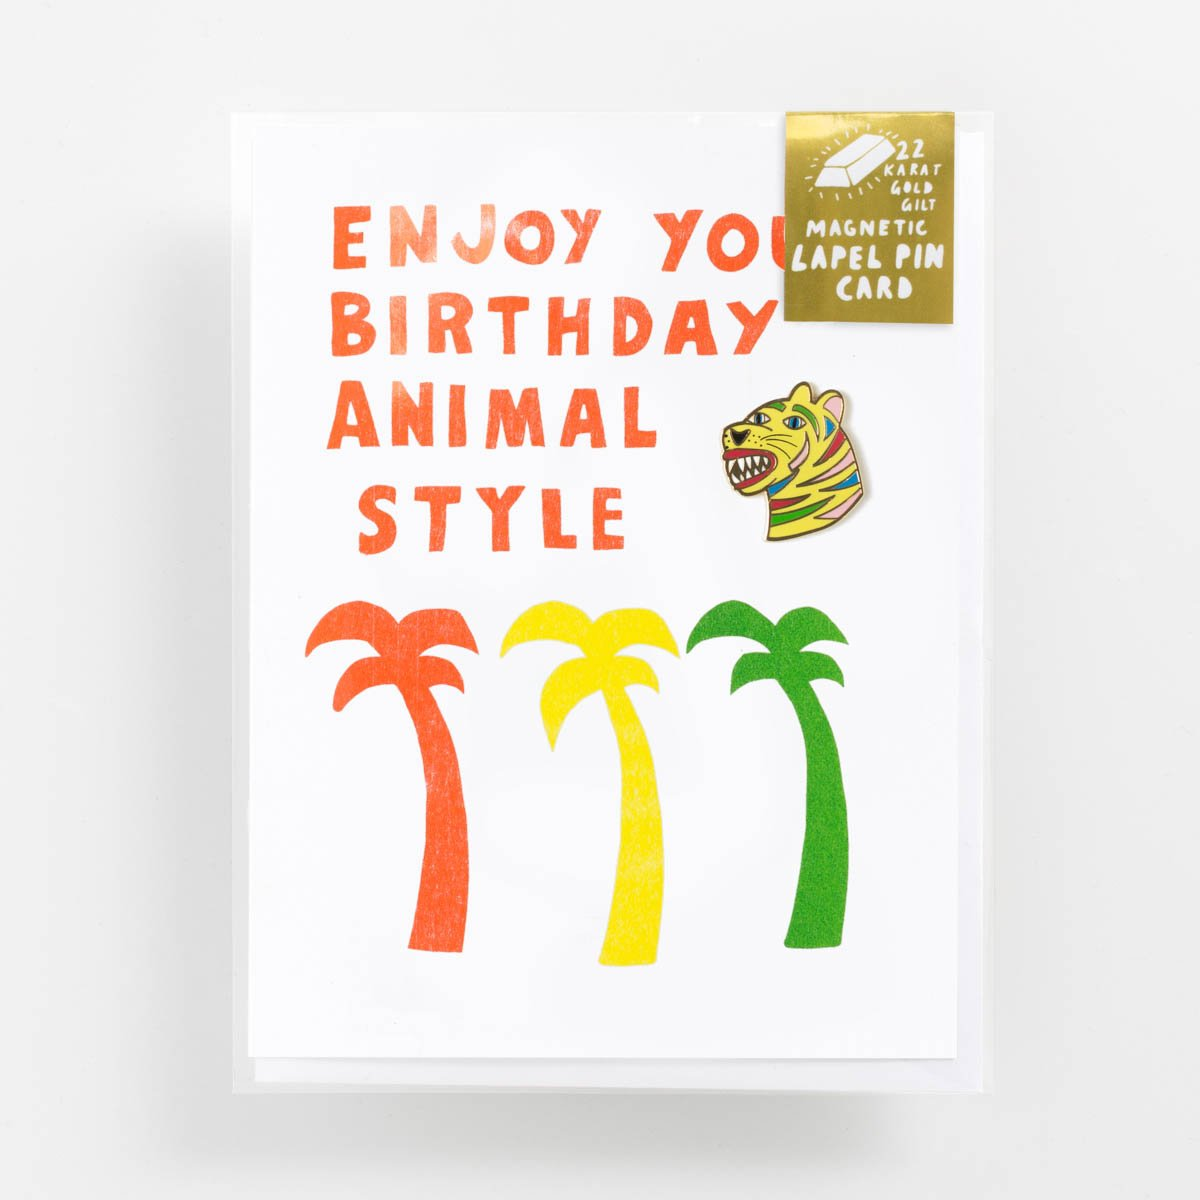 Animal Style Birthday - Lapel Pin Card